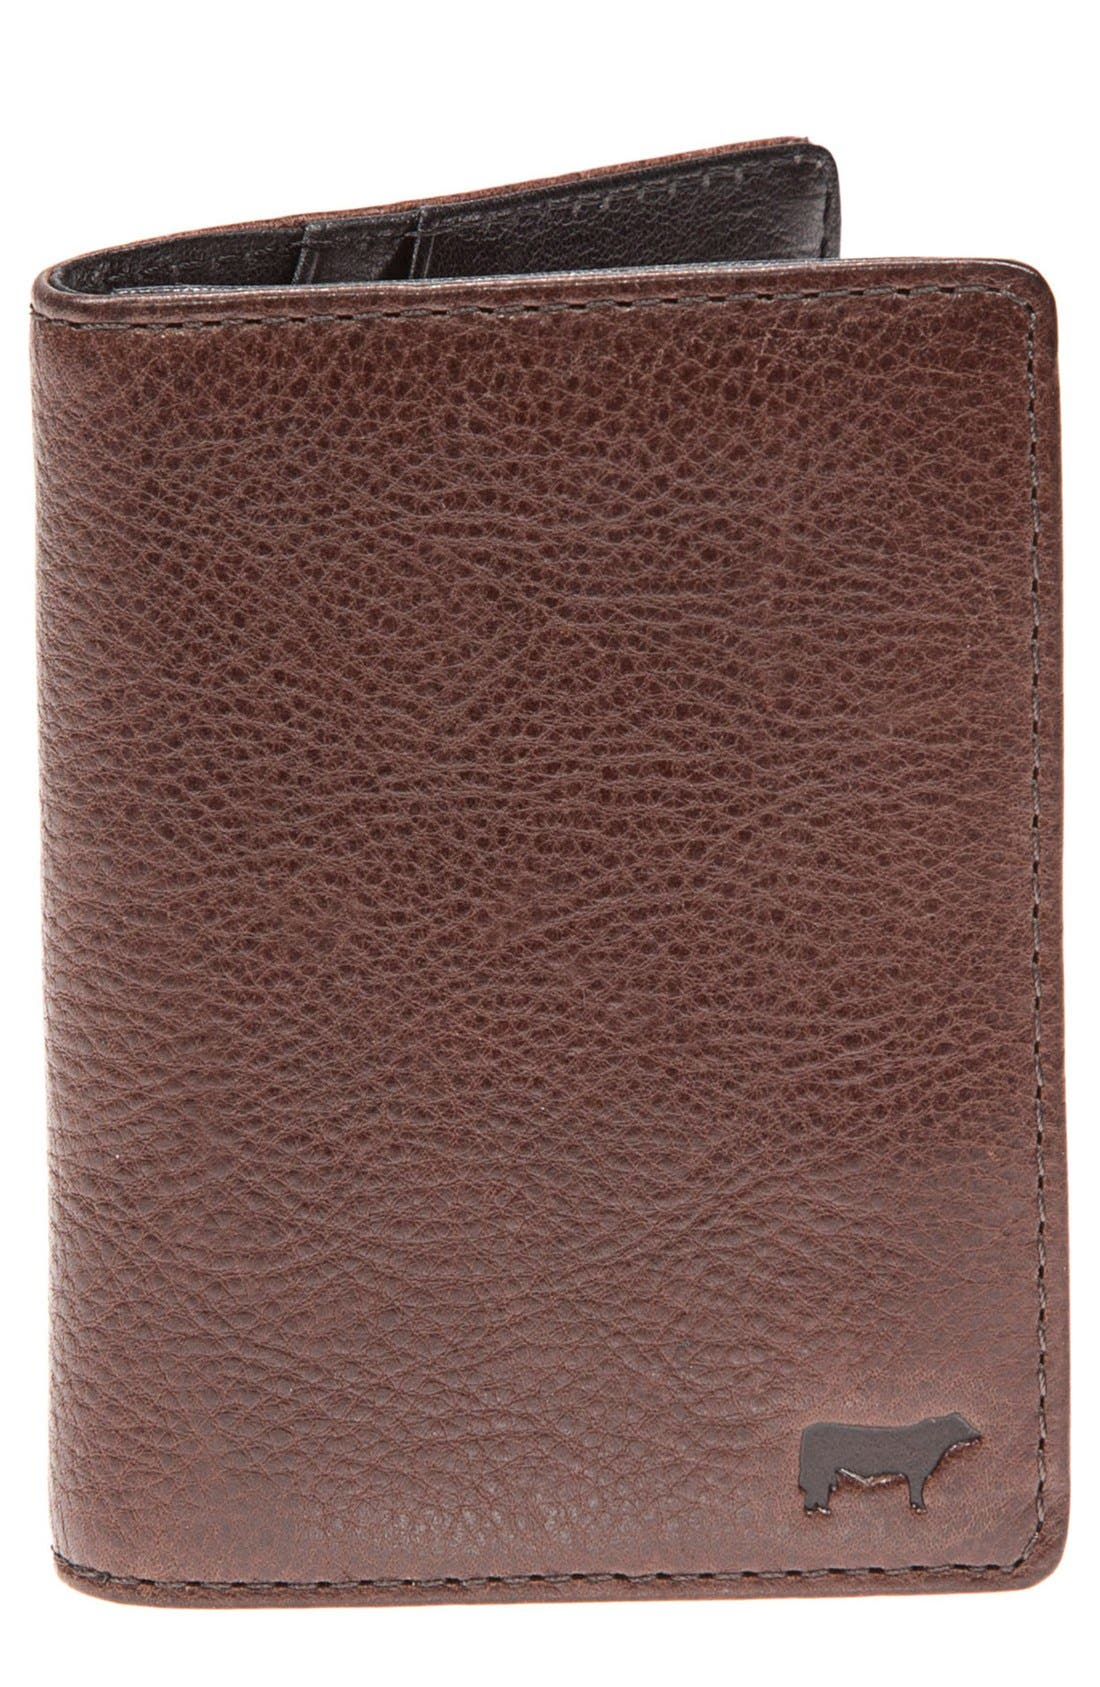 Main Image - Will Leather Goods 'Clyde' Front Pocket Wallet